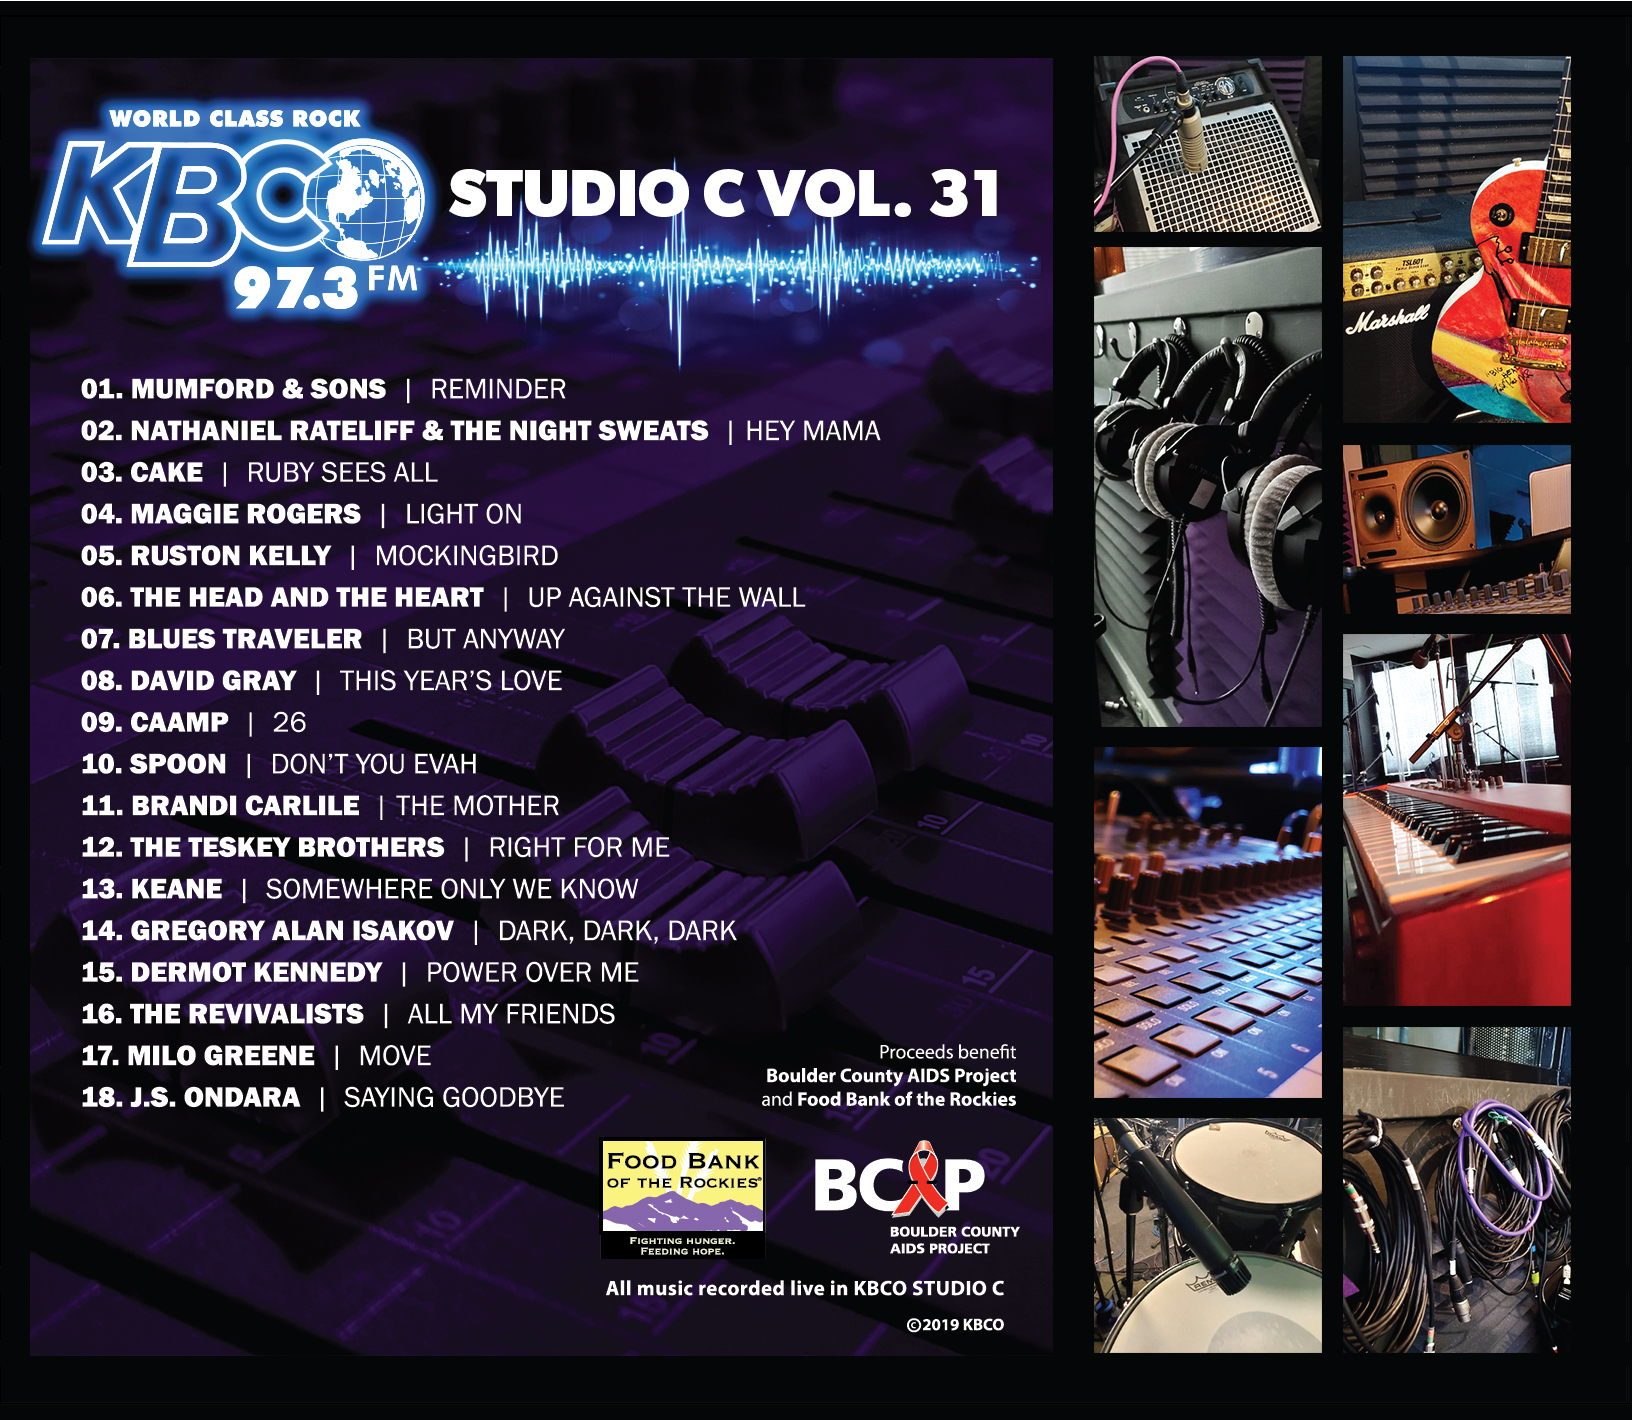 KBCO Announces Studio C Volume 31